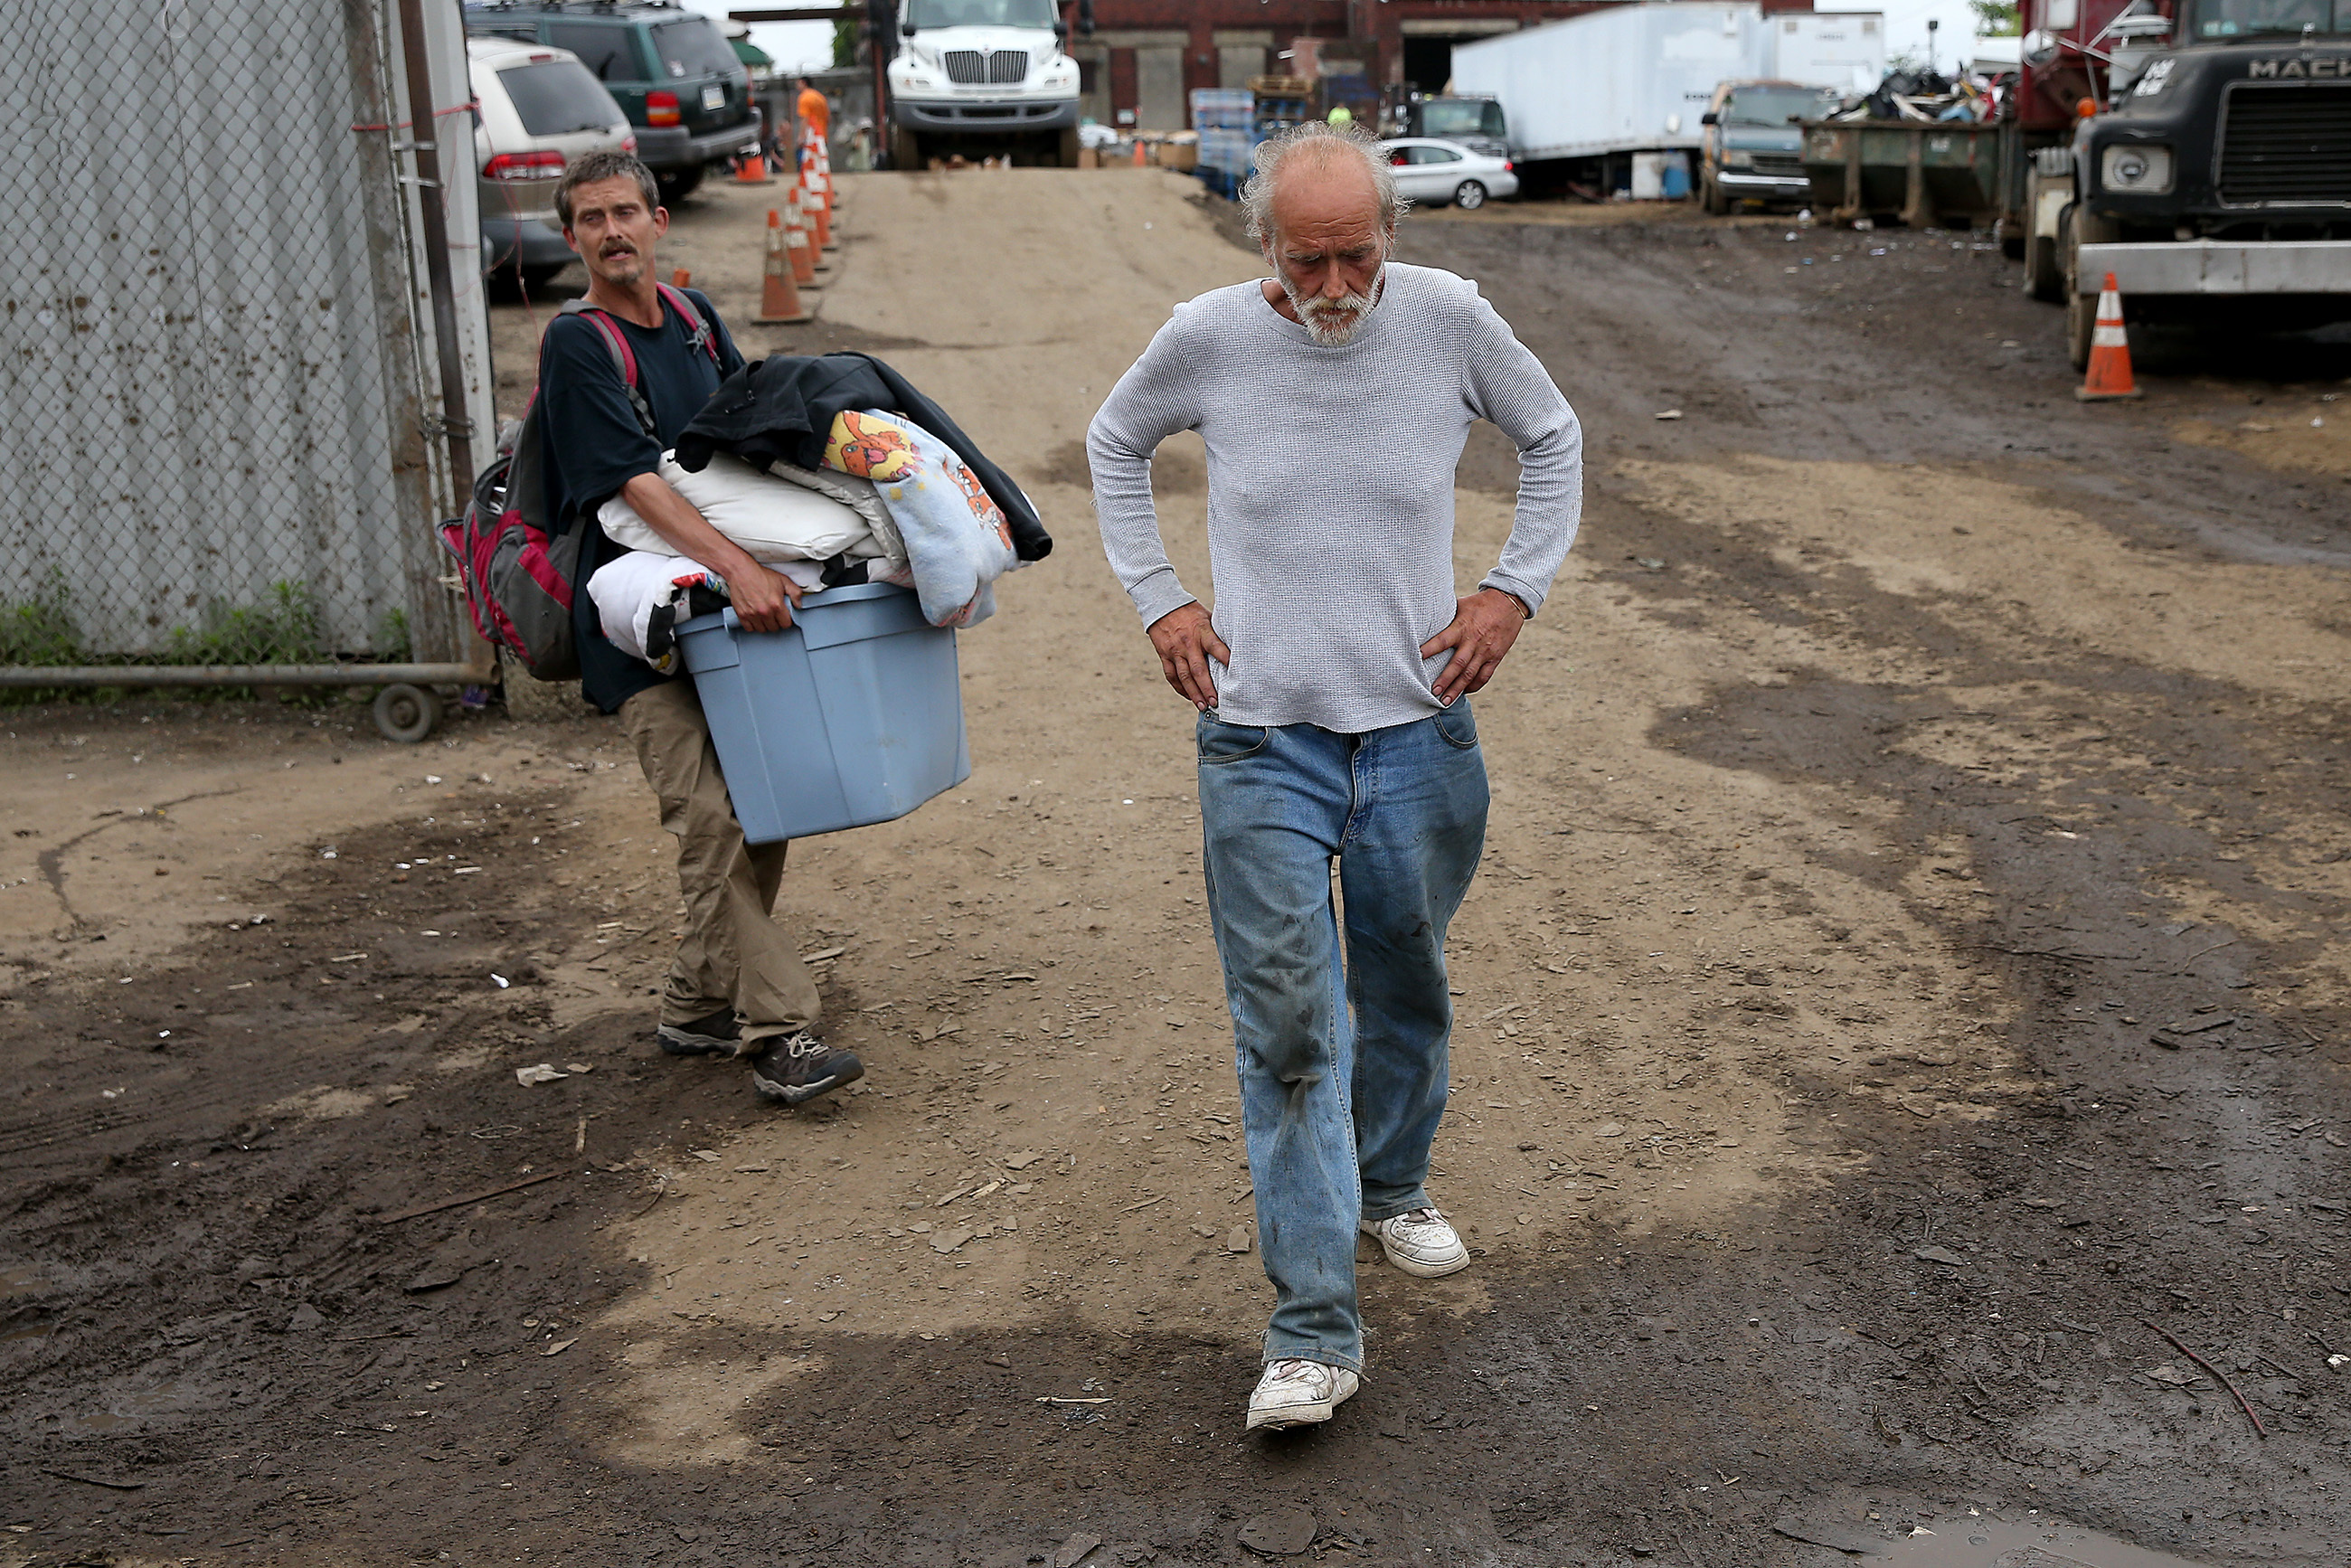 Jason Carmine, left, and his father, Kevin Carmine, right, who were living under the Tulip Street bridge, carry away their belonging as police evicted people living at two of Kensington´s heroin camps in Philadelphia, PA on May 30, 2018. DAVID MAIALETTI / Staff Photographer